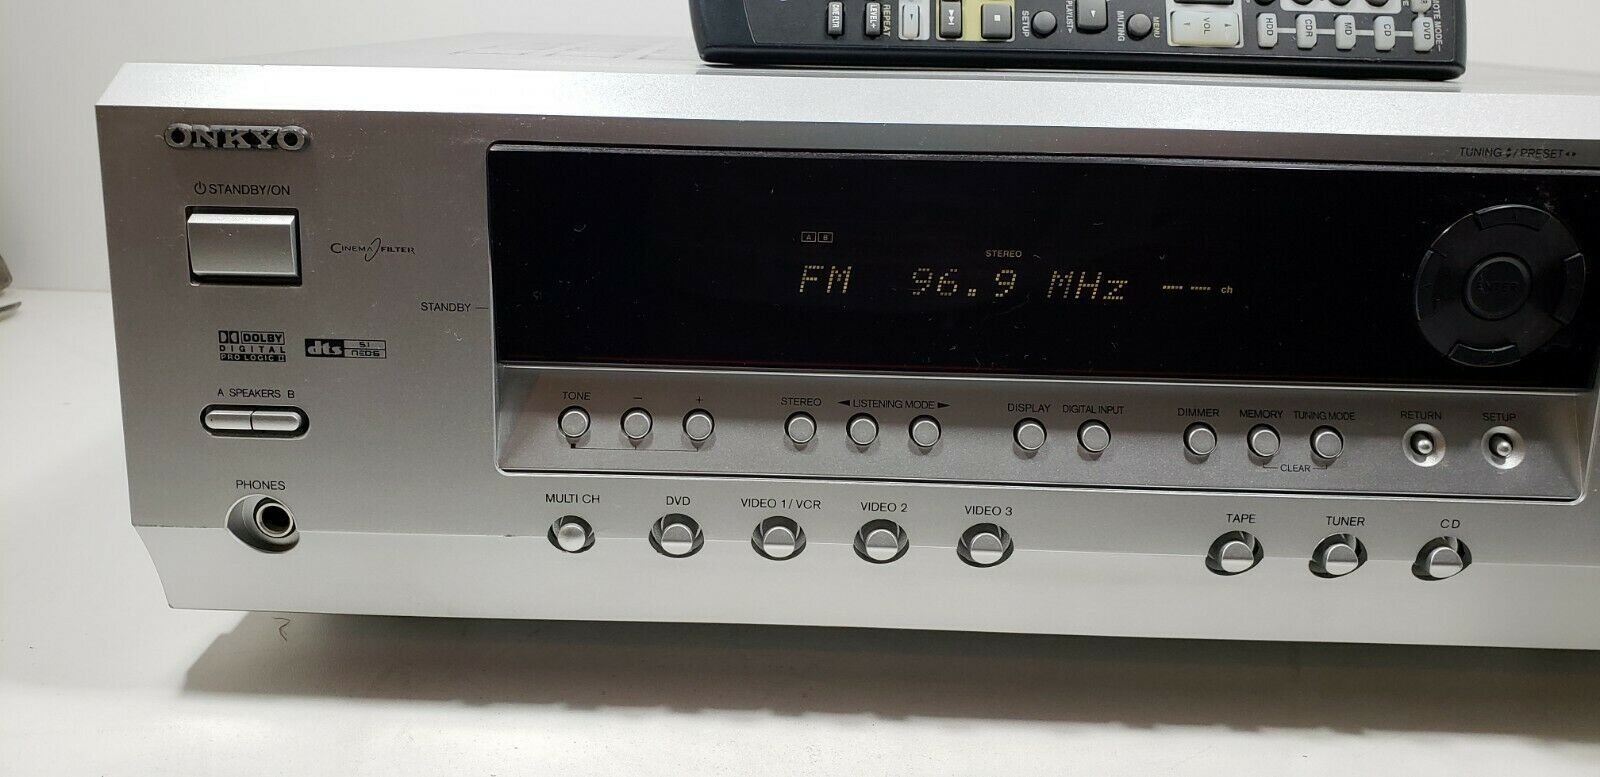 ONKYO AV Receiver HT-R340 With Remote bundle Tested/Working image 2